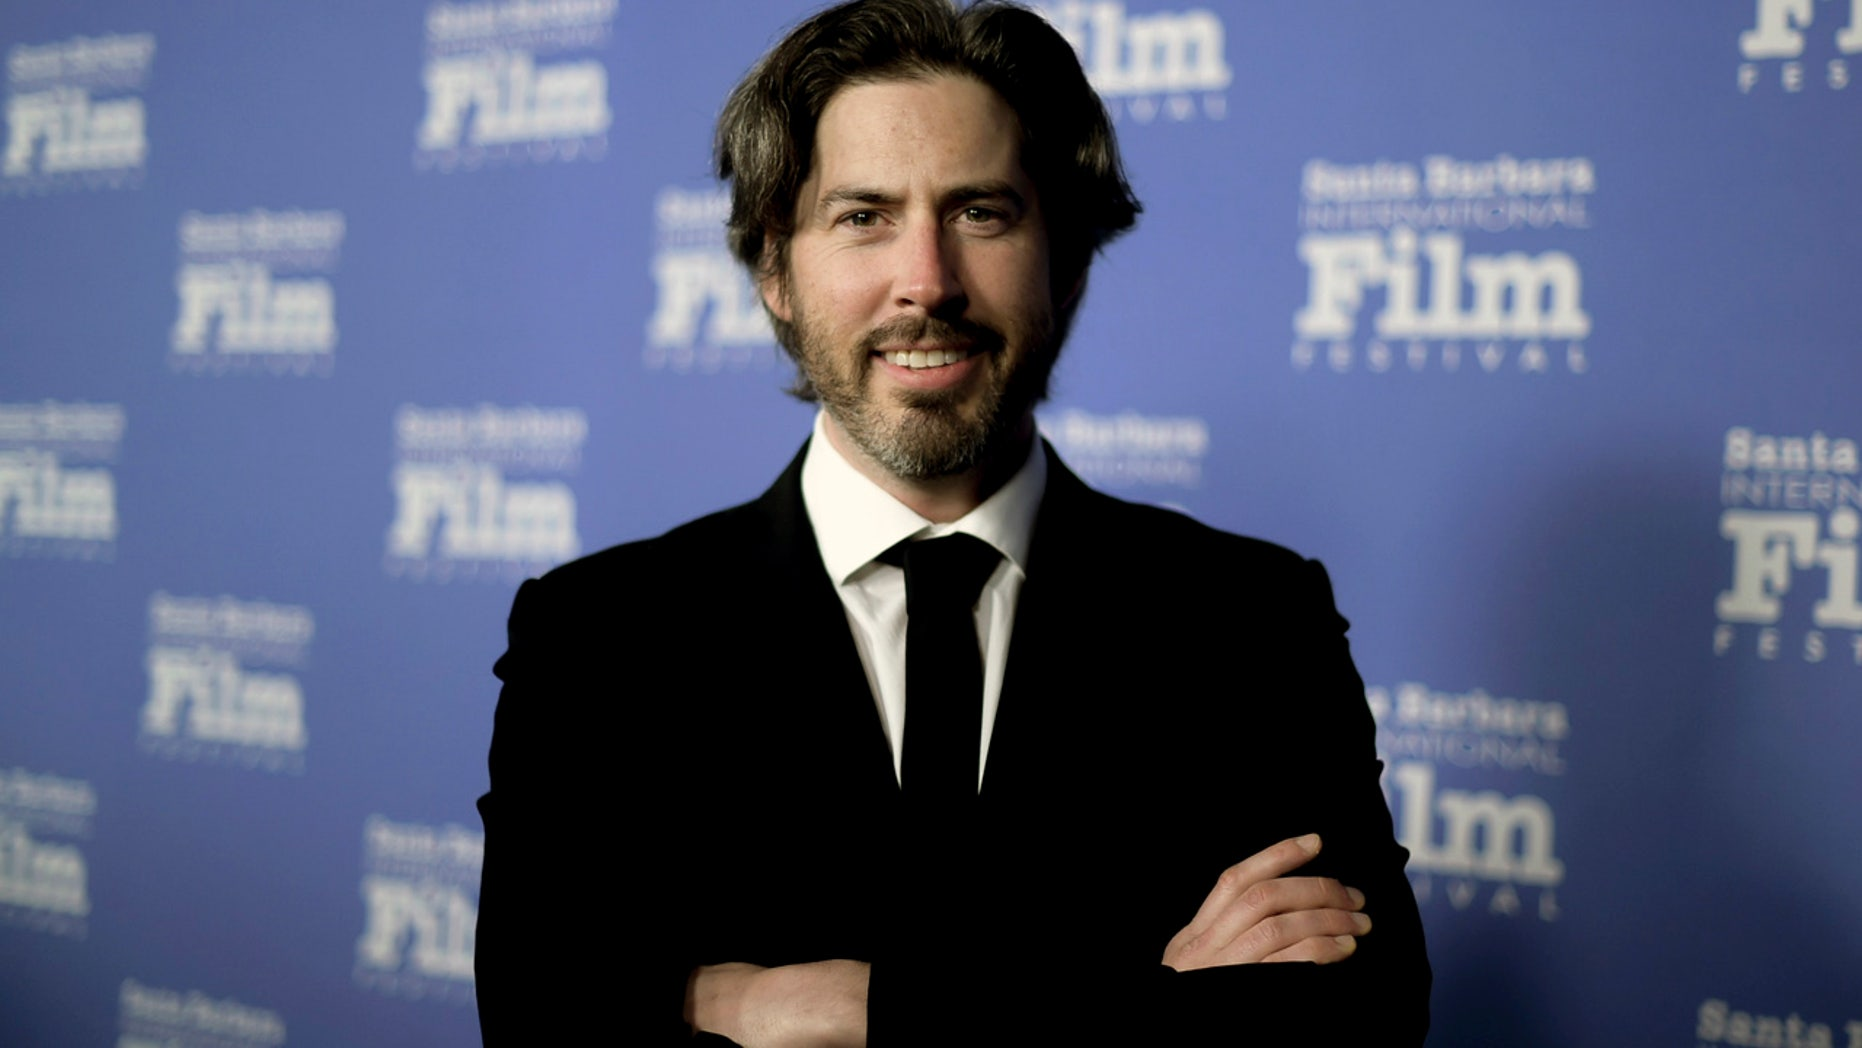 """Director Jason Reitman gets some negative reaction for comments about his new """"Ghostbusters"""" movie, which critics consider sexist."""